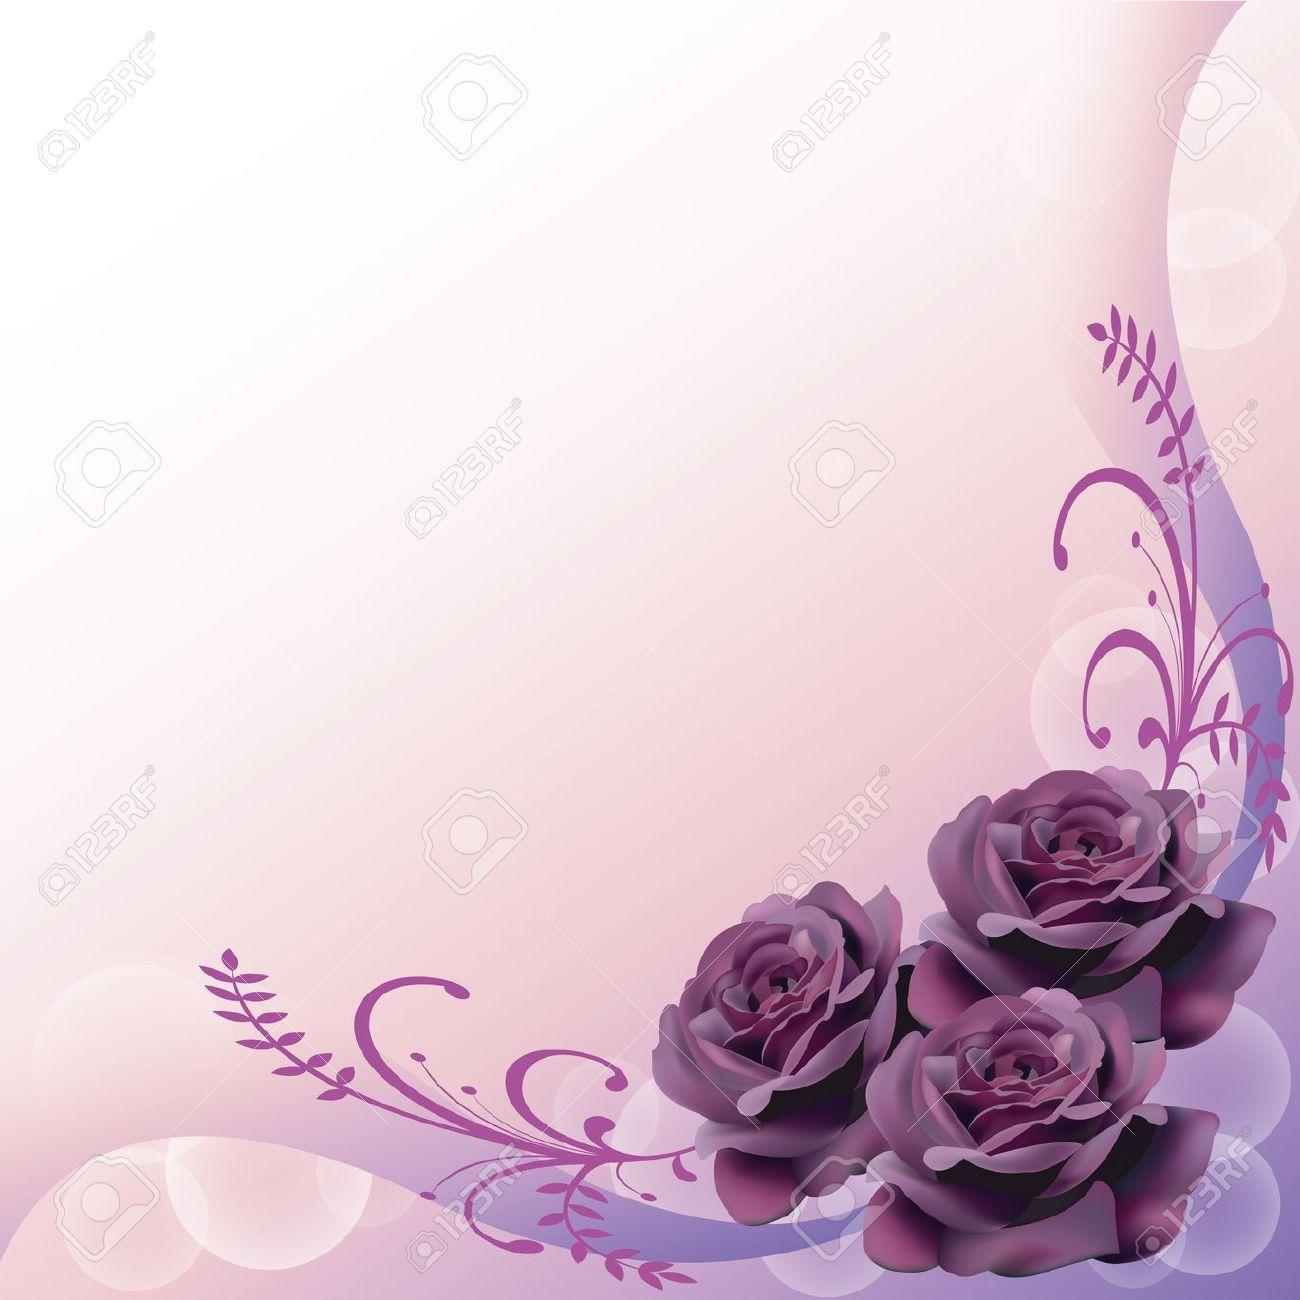 Purple Roses Background Images: Purple Roses Backgrounds